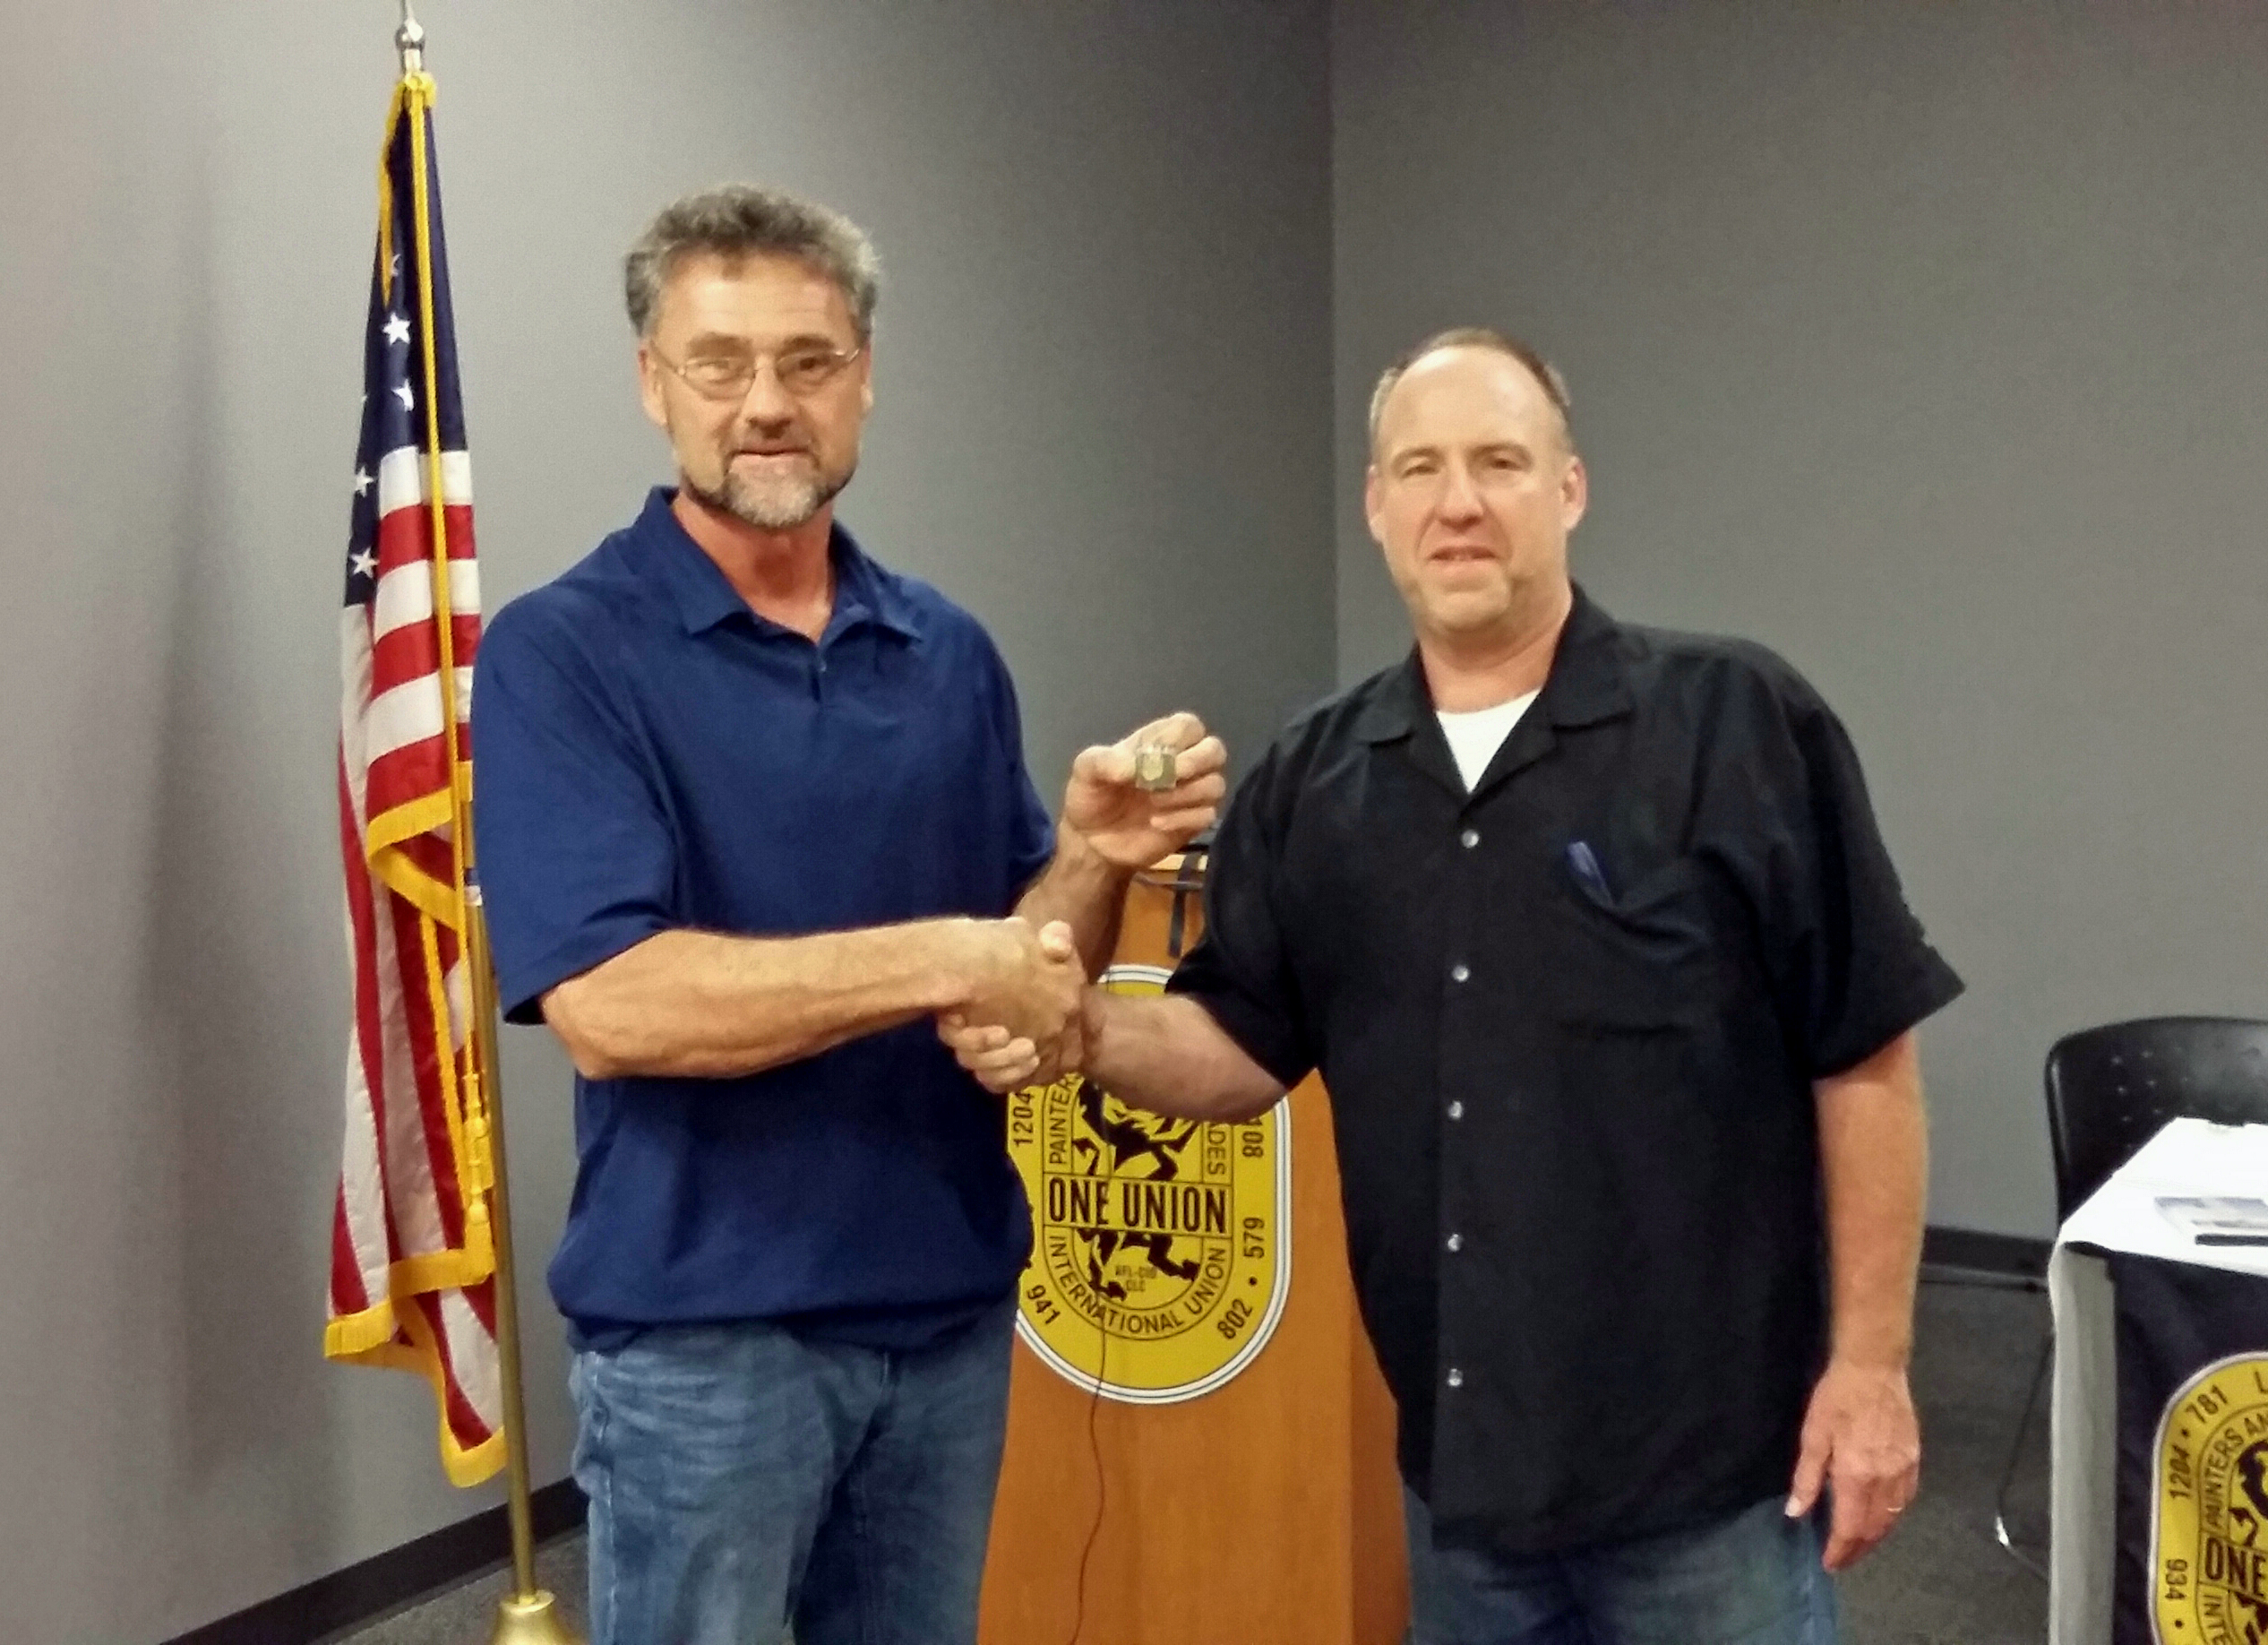 Local Union 781's Curt Belden accepts his 30-year service pin during a monthly meeting.